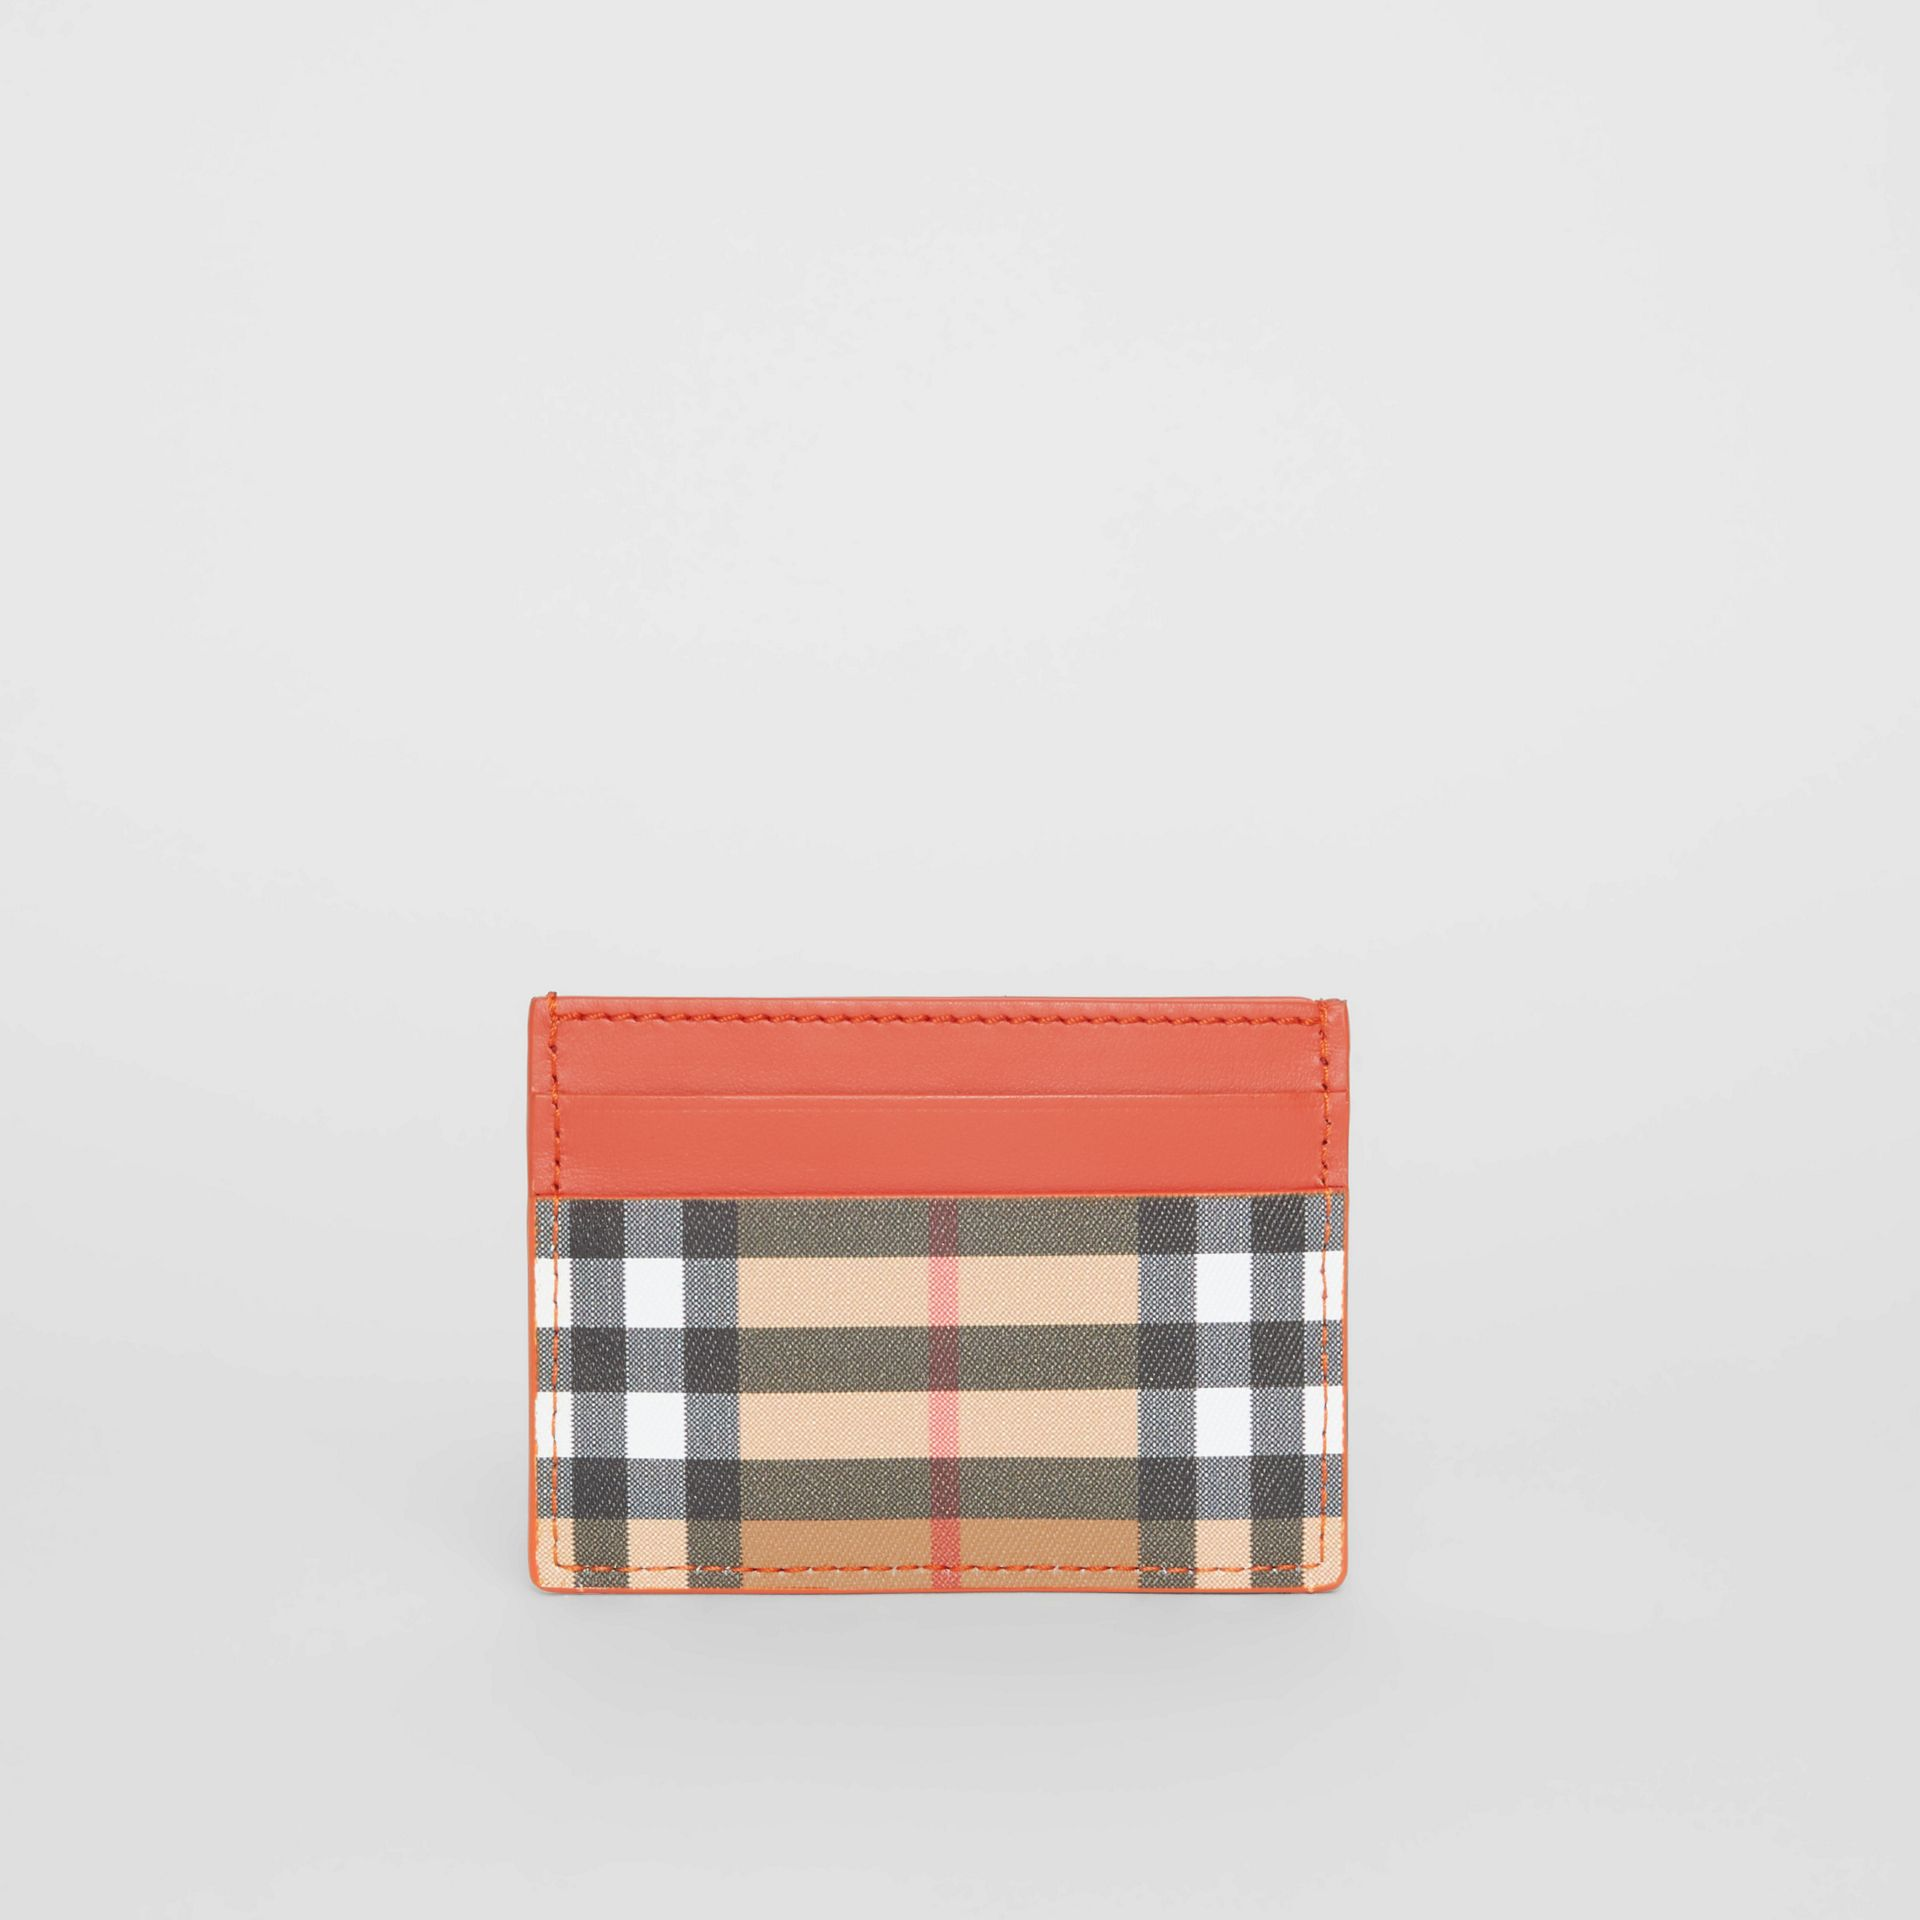 Vintage Check and Leather Card Case in Clementine - Women | Burberry Singapore - gallery image 4